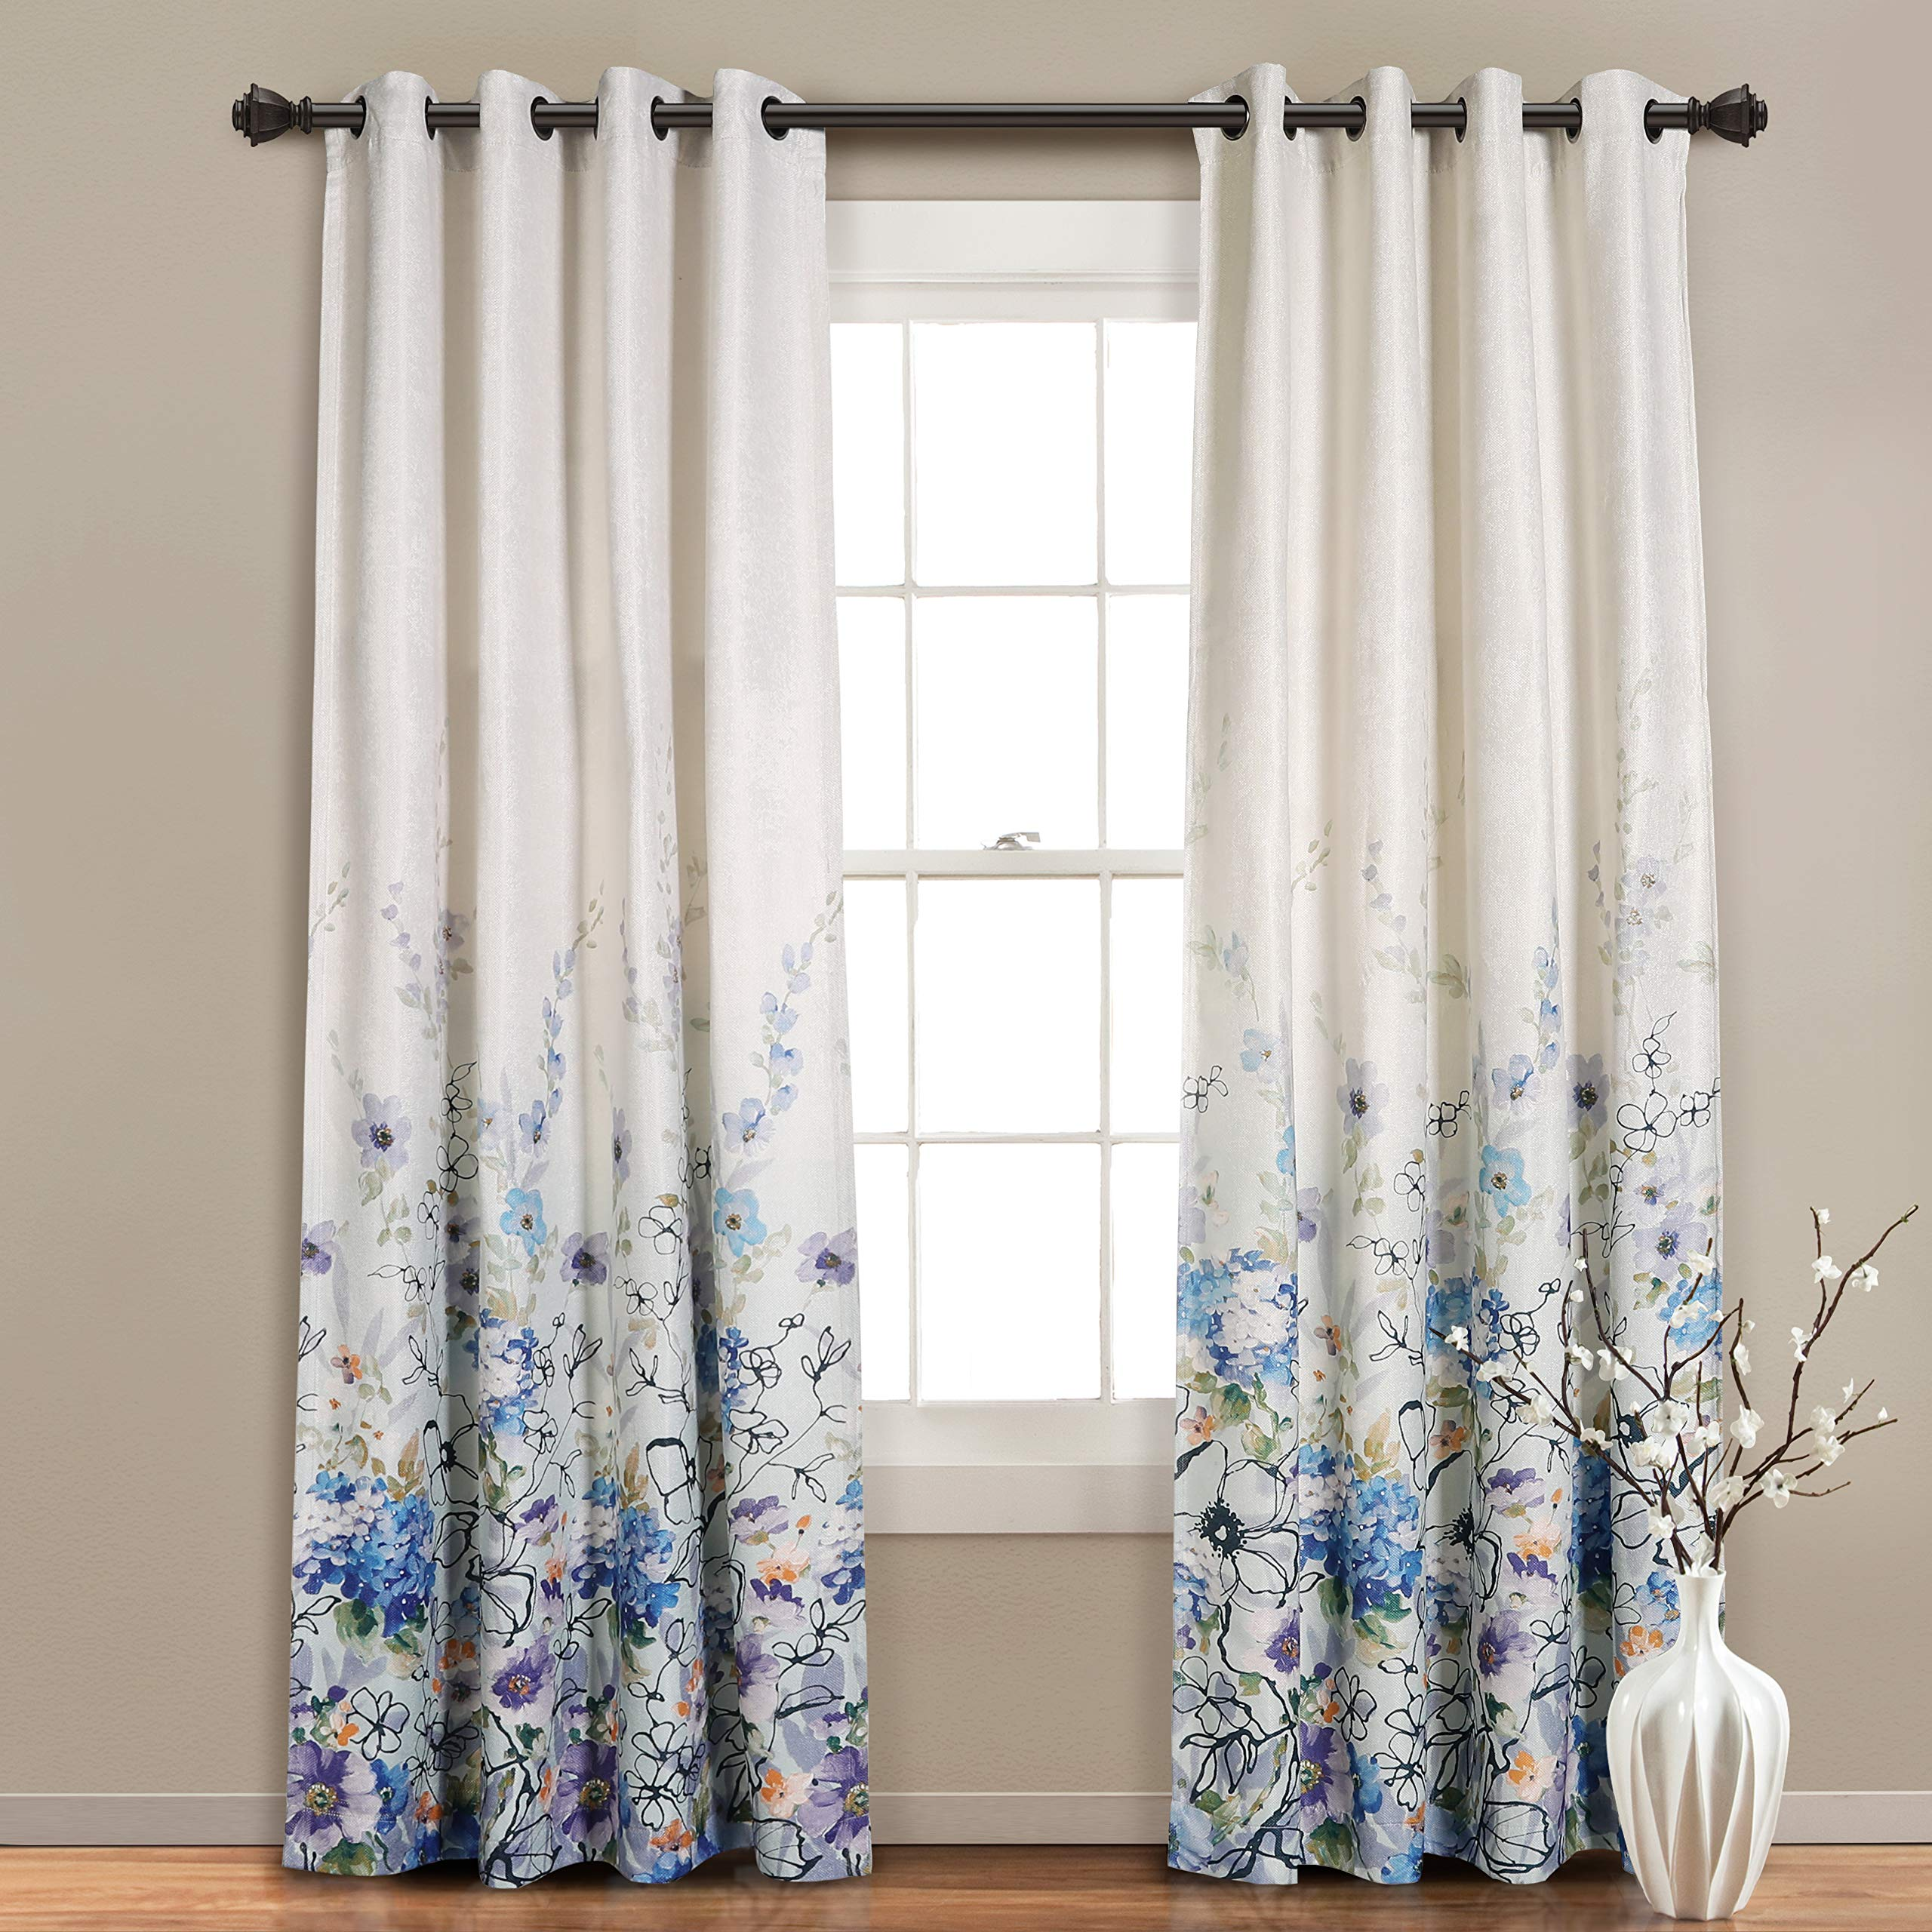 MYSKY HOME Floral Design Print Grommet top Thermal Insulated Faux Linen Room Darkening Curtains, 52 x 95 Inch, Blue, 1 Panel by MYSKY HOME